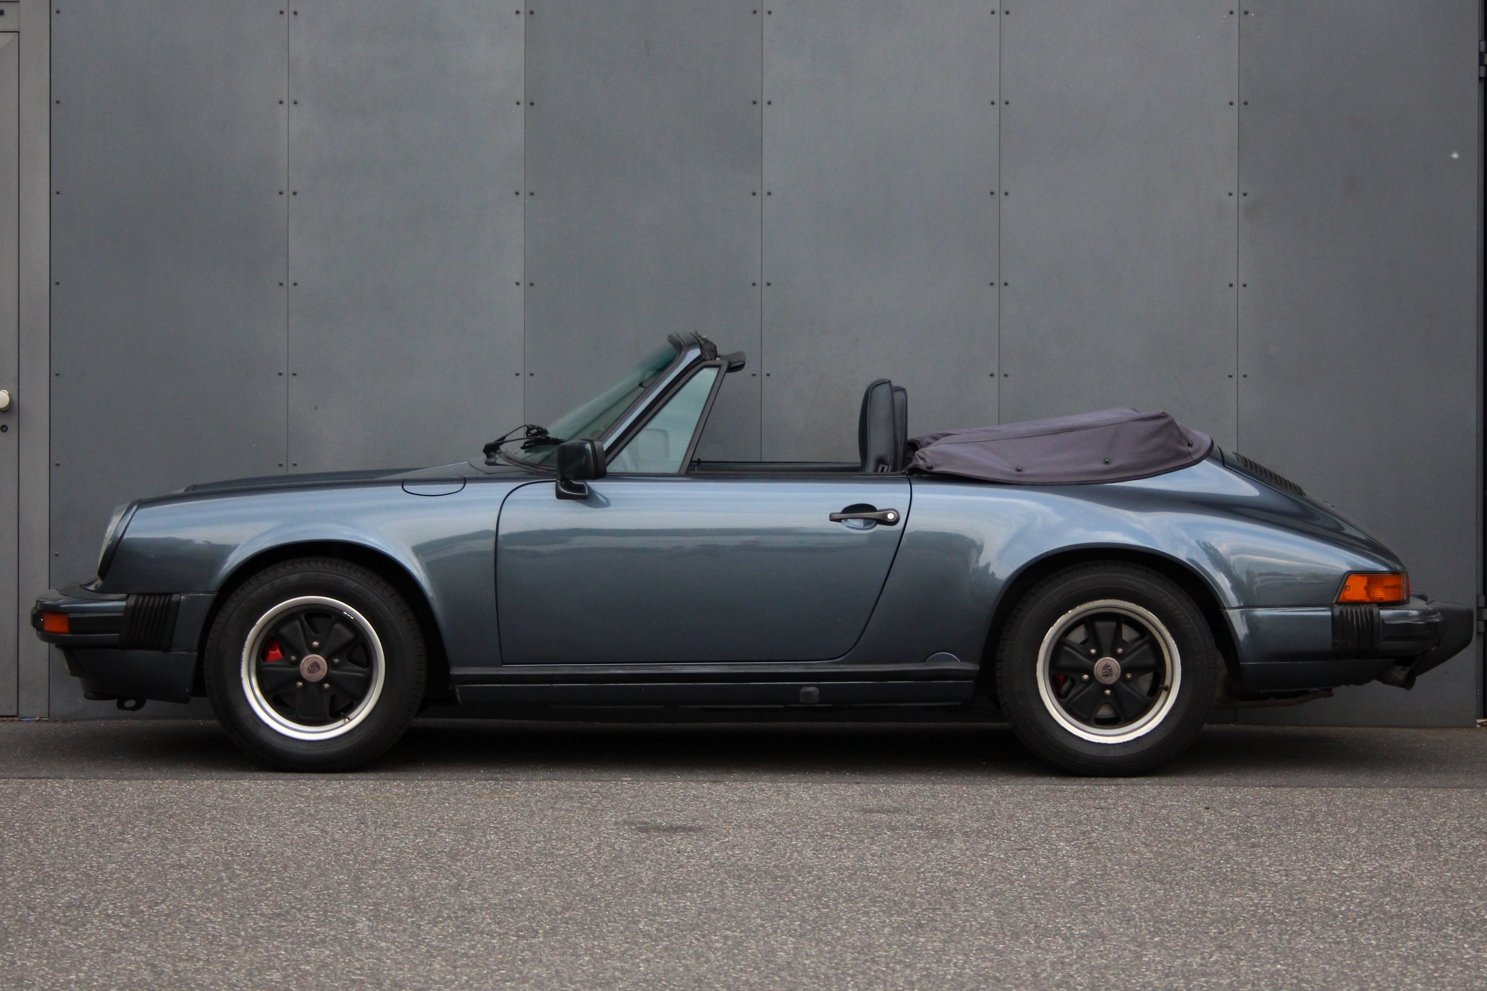 1987 Porsche 911 3.2 Carrera Cabriolet G50 Getriebe LHD For Sale (picture 5 of 6)